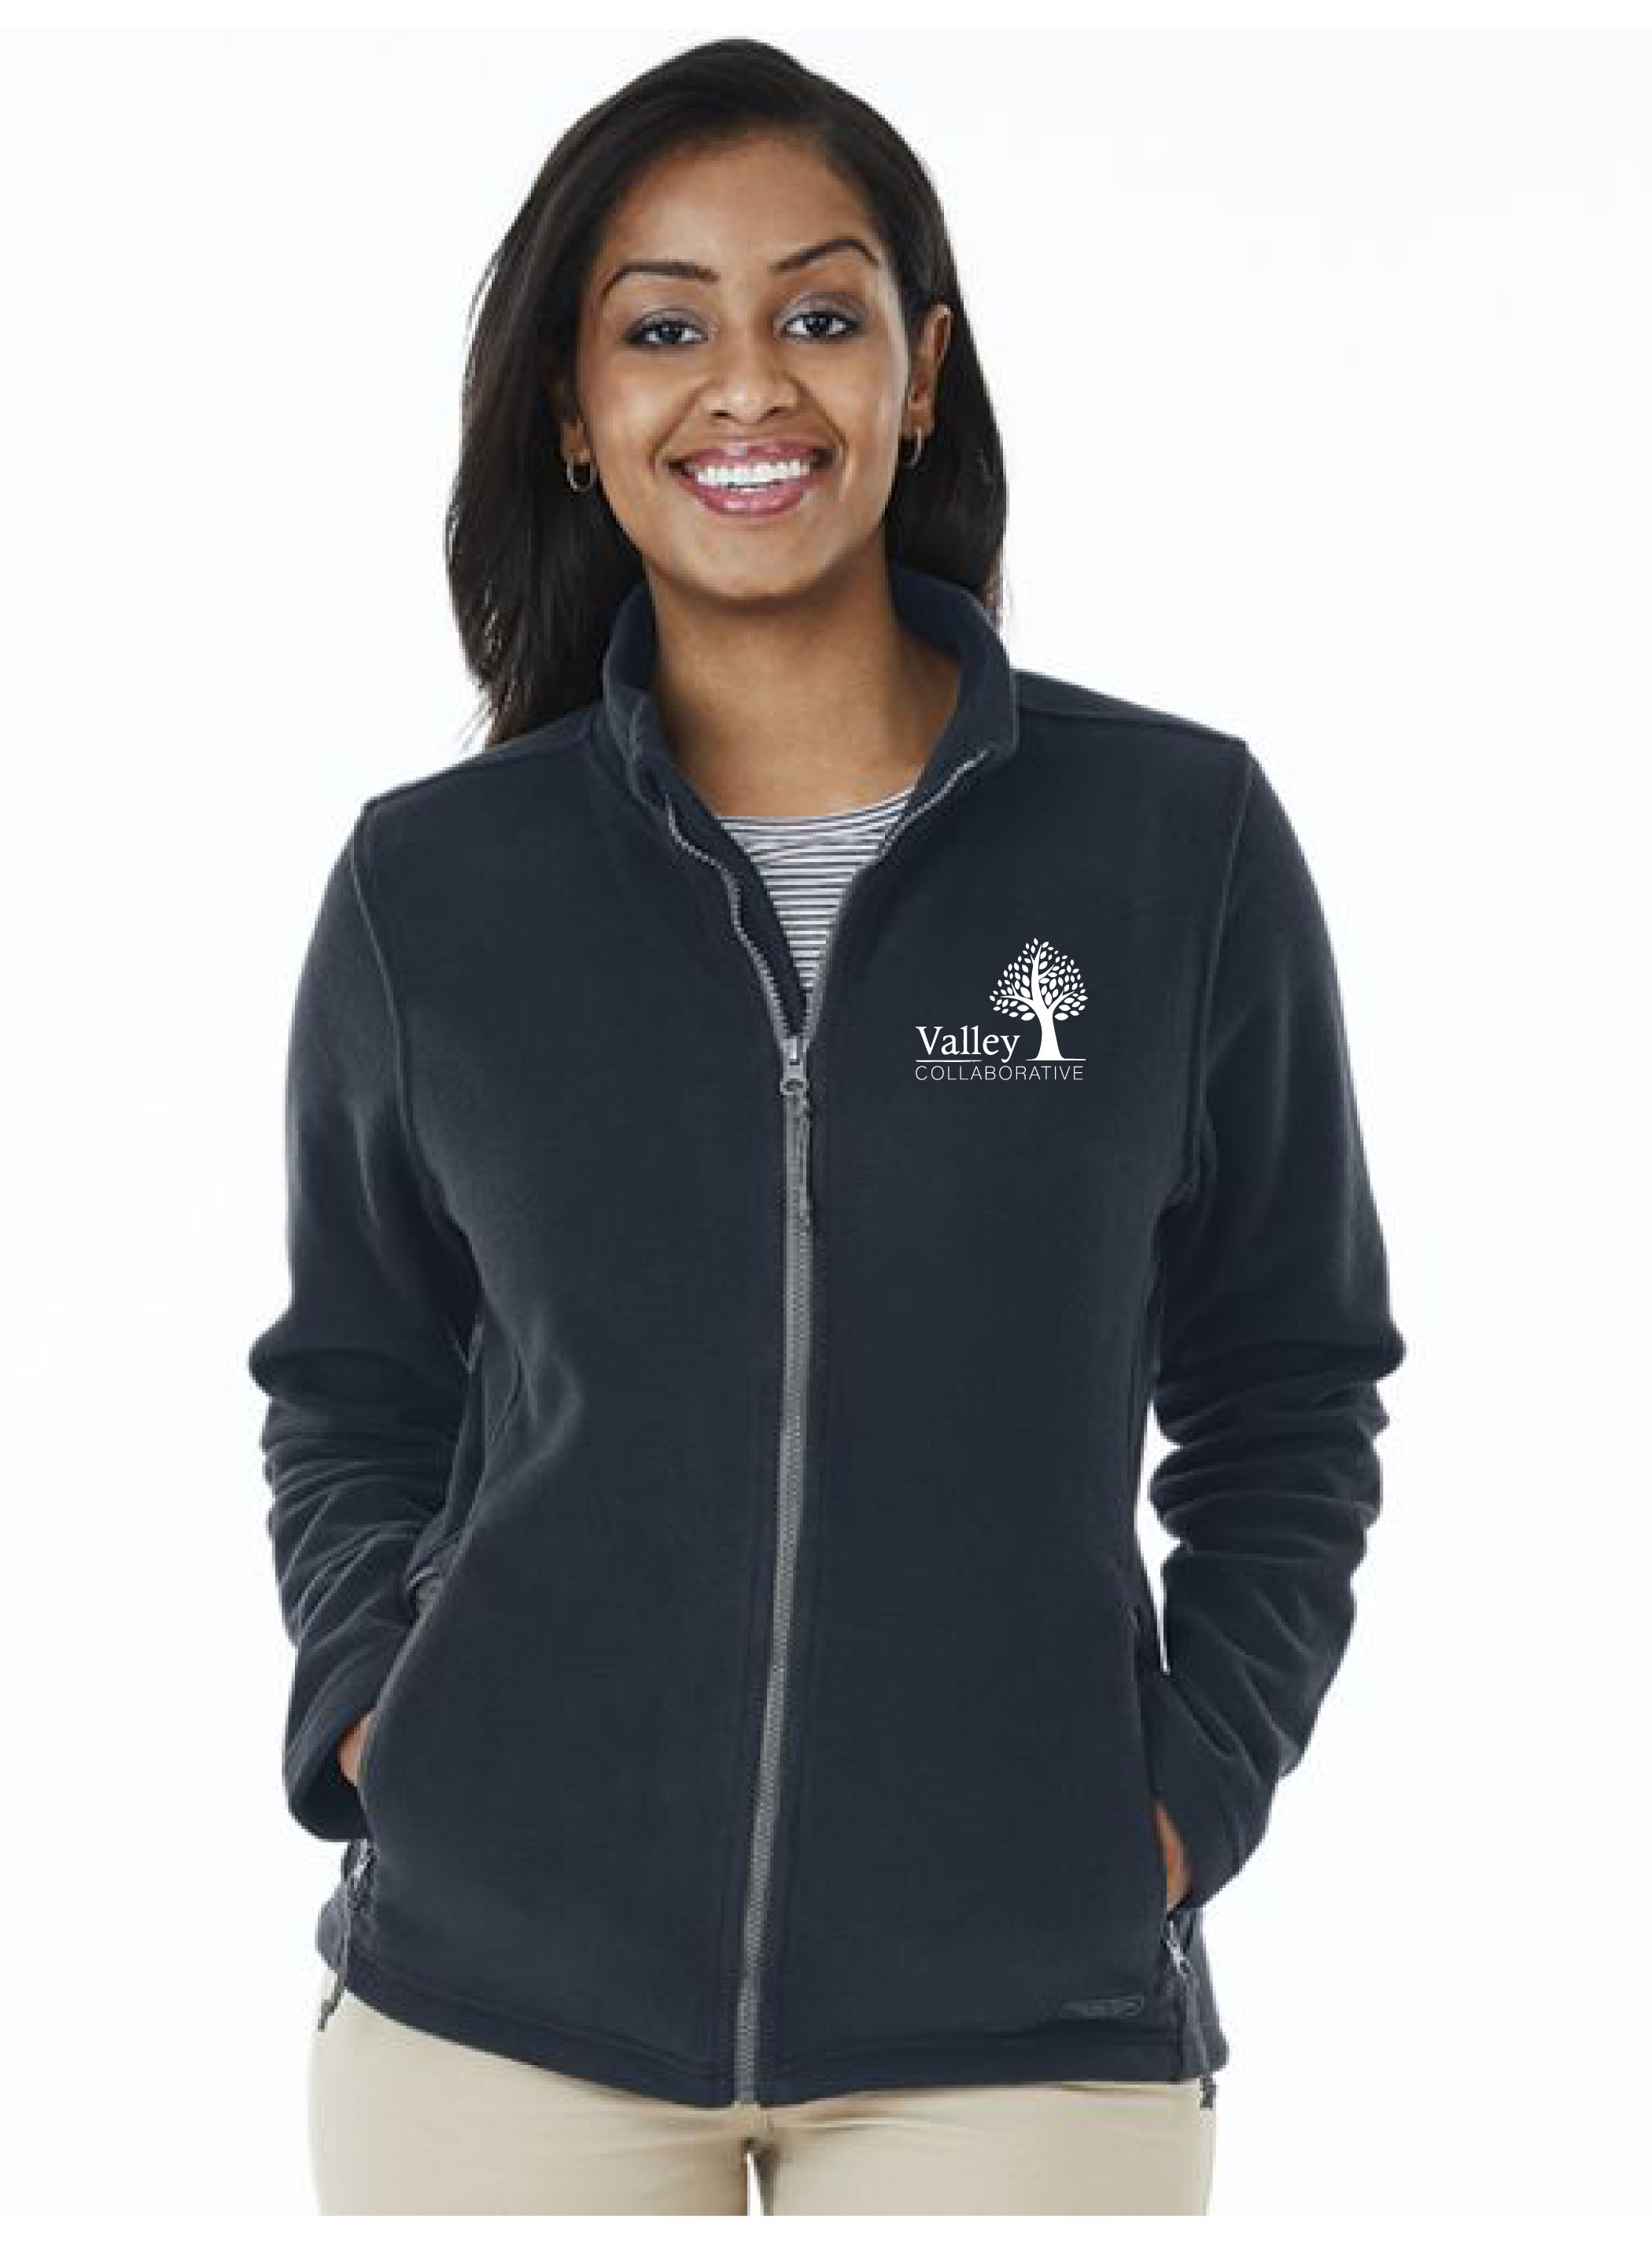 VALLEY COLLABORATED EMBROIDERED MEN'S OR WOMEN'S FLEECE JACKET – NAVY |  Embroidery Unlimited